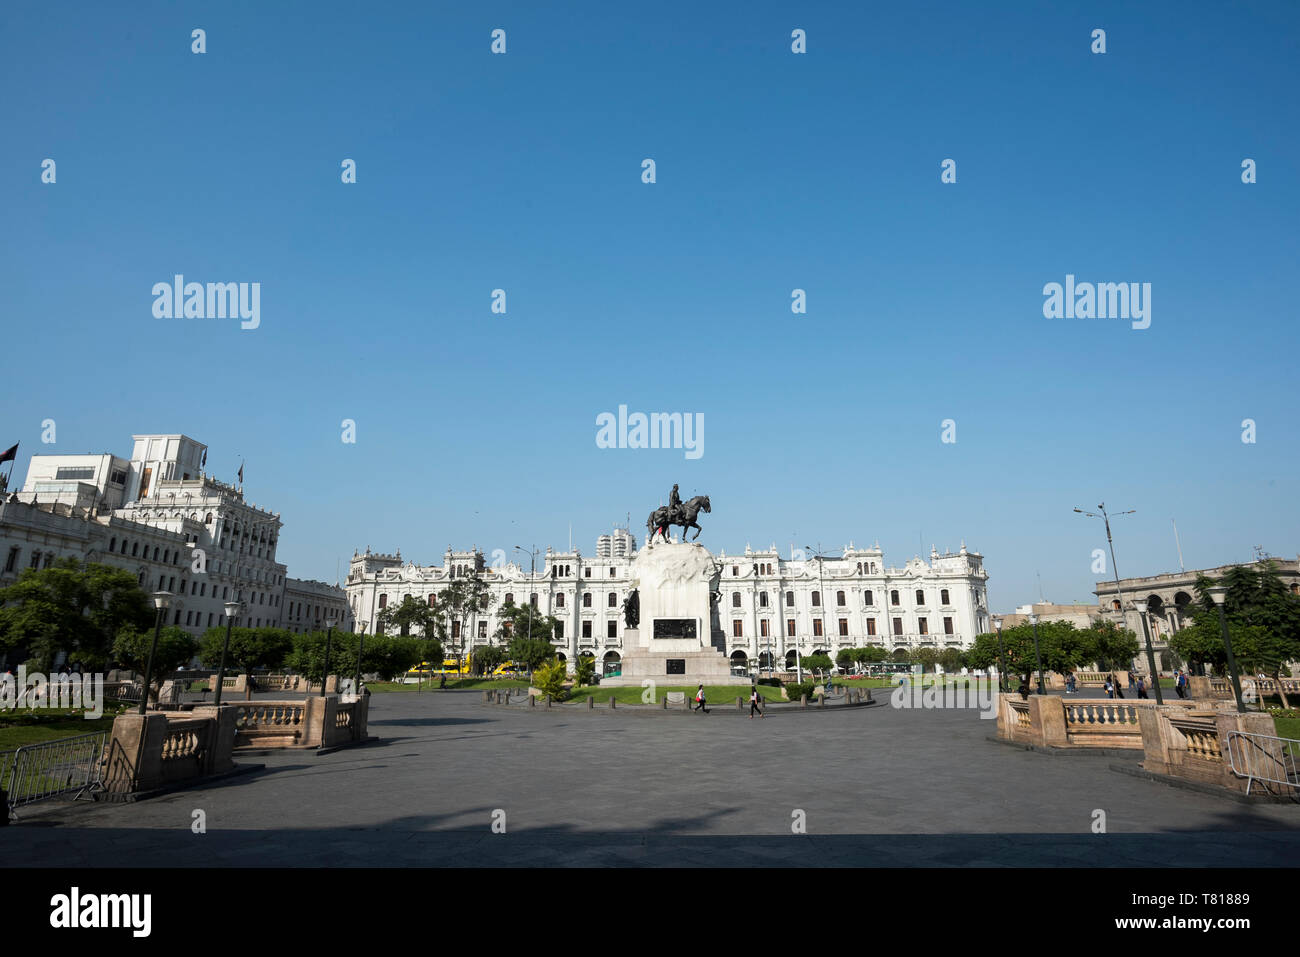 View of the Plaza San Martin in the Historic Centre of Lima, Peru, a UNESCO World Heritage Site. - Stock Image